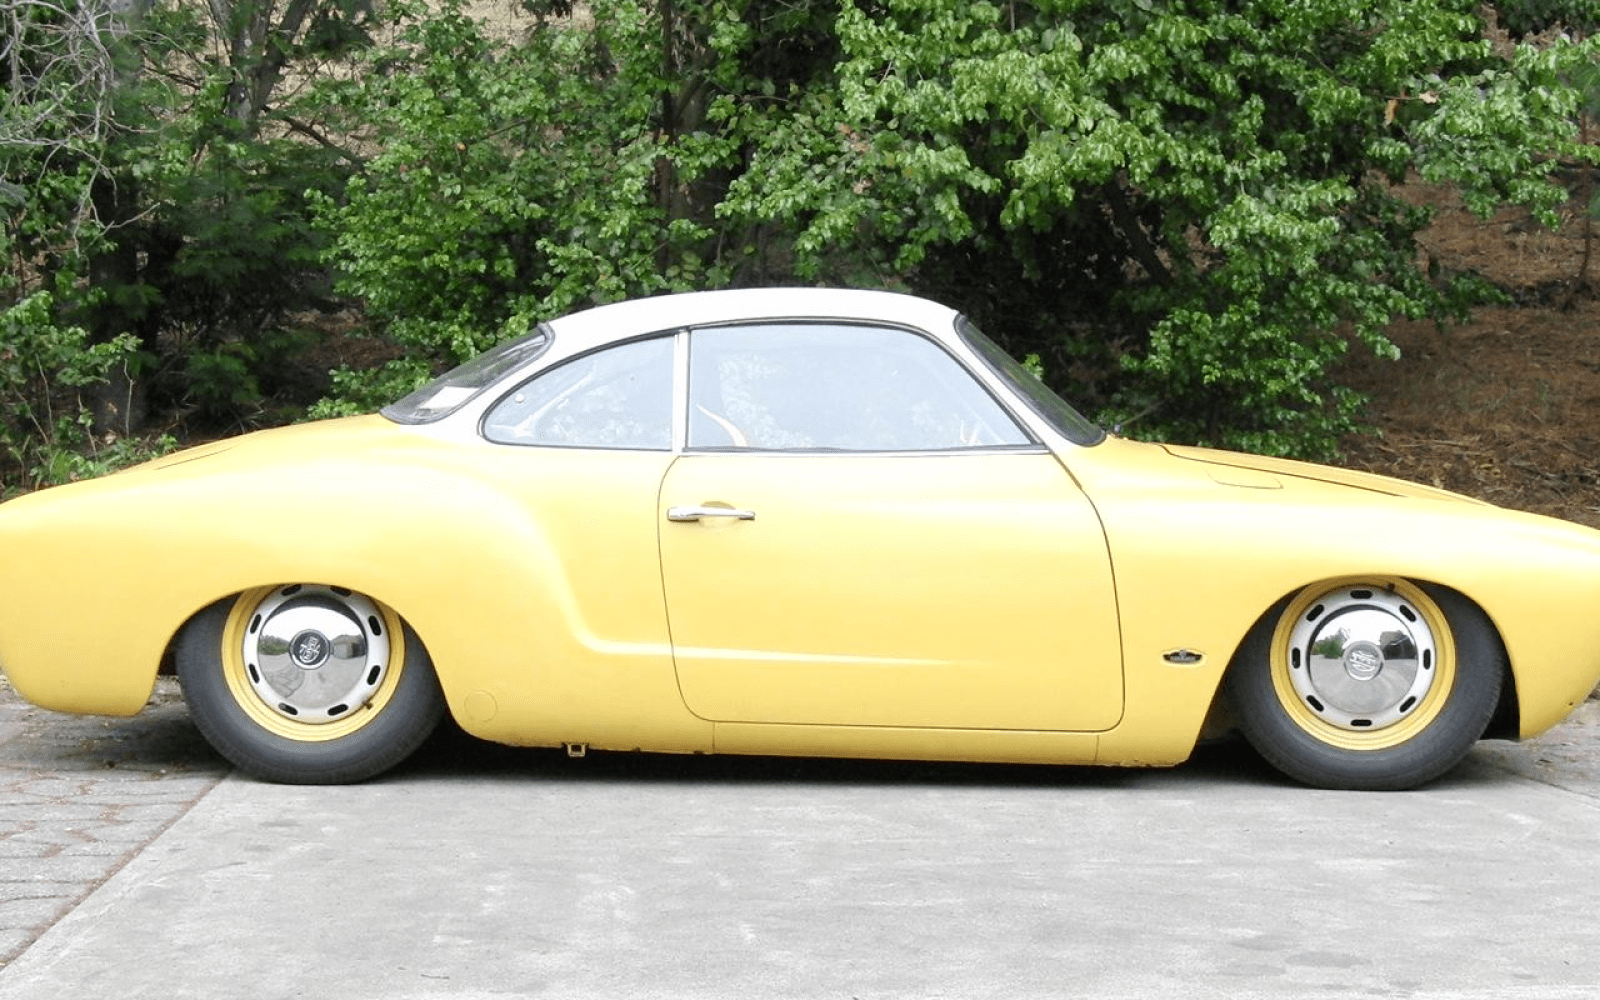 Mechanical engineering student converts a 1969 VW Karmann Ghia into an all-electric classic